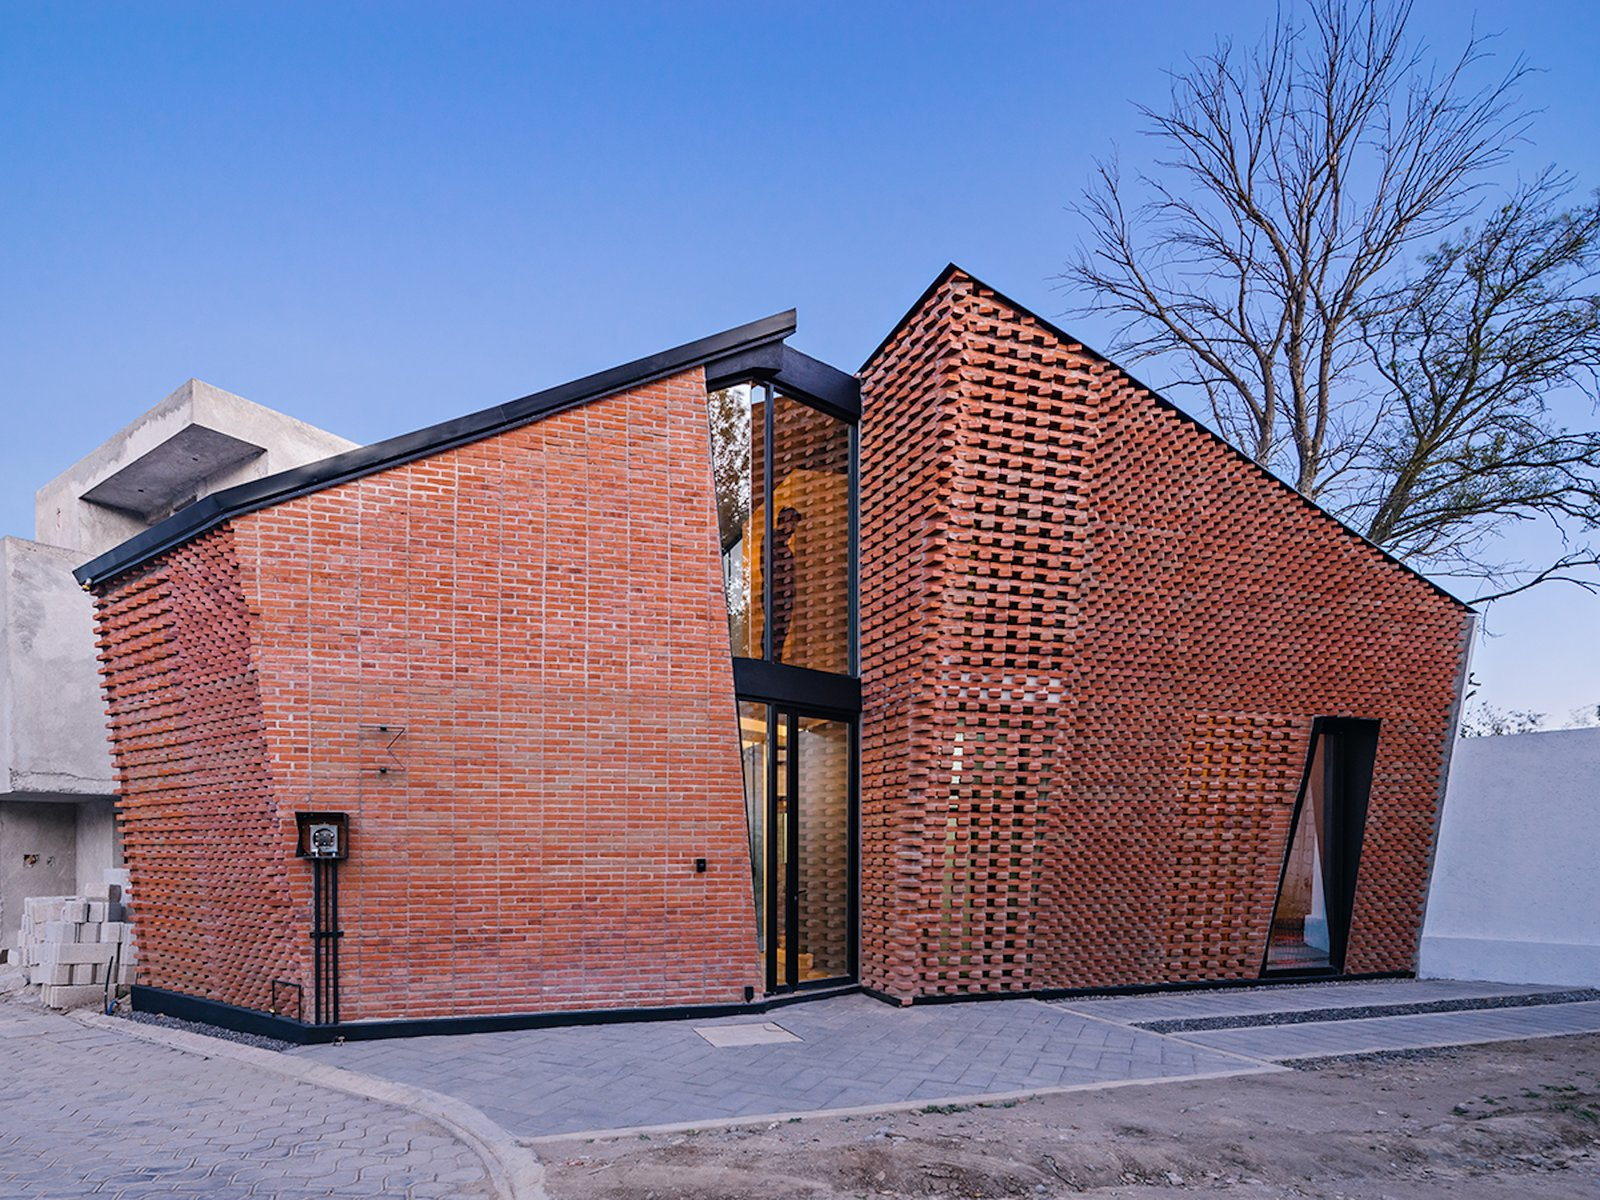 Exterior, Brick Siding Material, House Building Type, Gable RoofLine, and Metal Roof Material The traditional bricklaying technique enabled the second-level interior space to become larger.    Photo 2 of 14 in Extruded Red Bricks Create a Gorgeous, Geometric Mexican Home